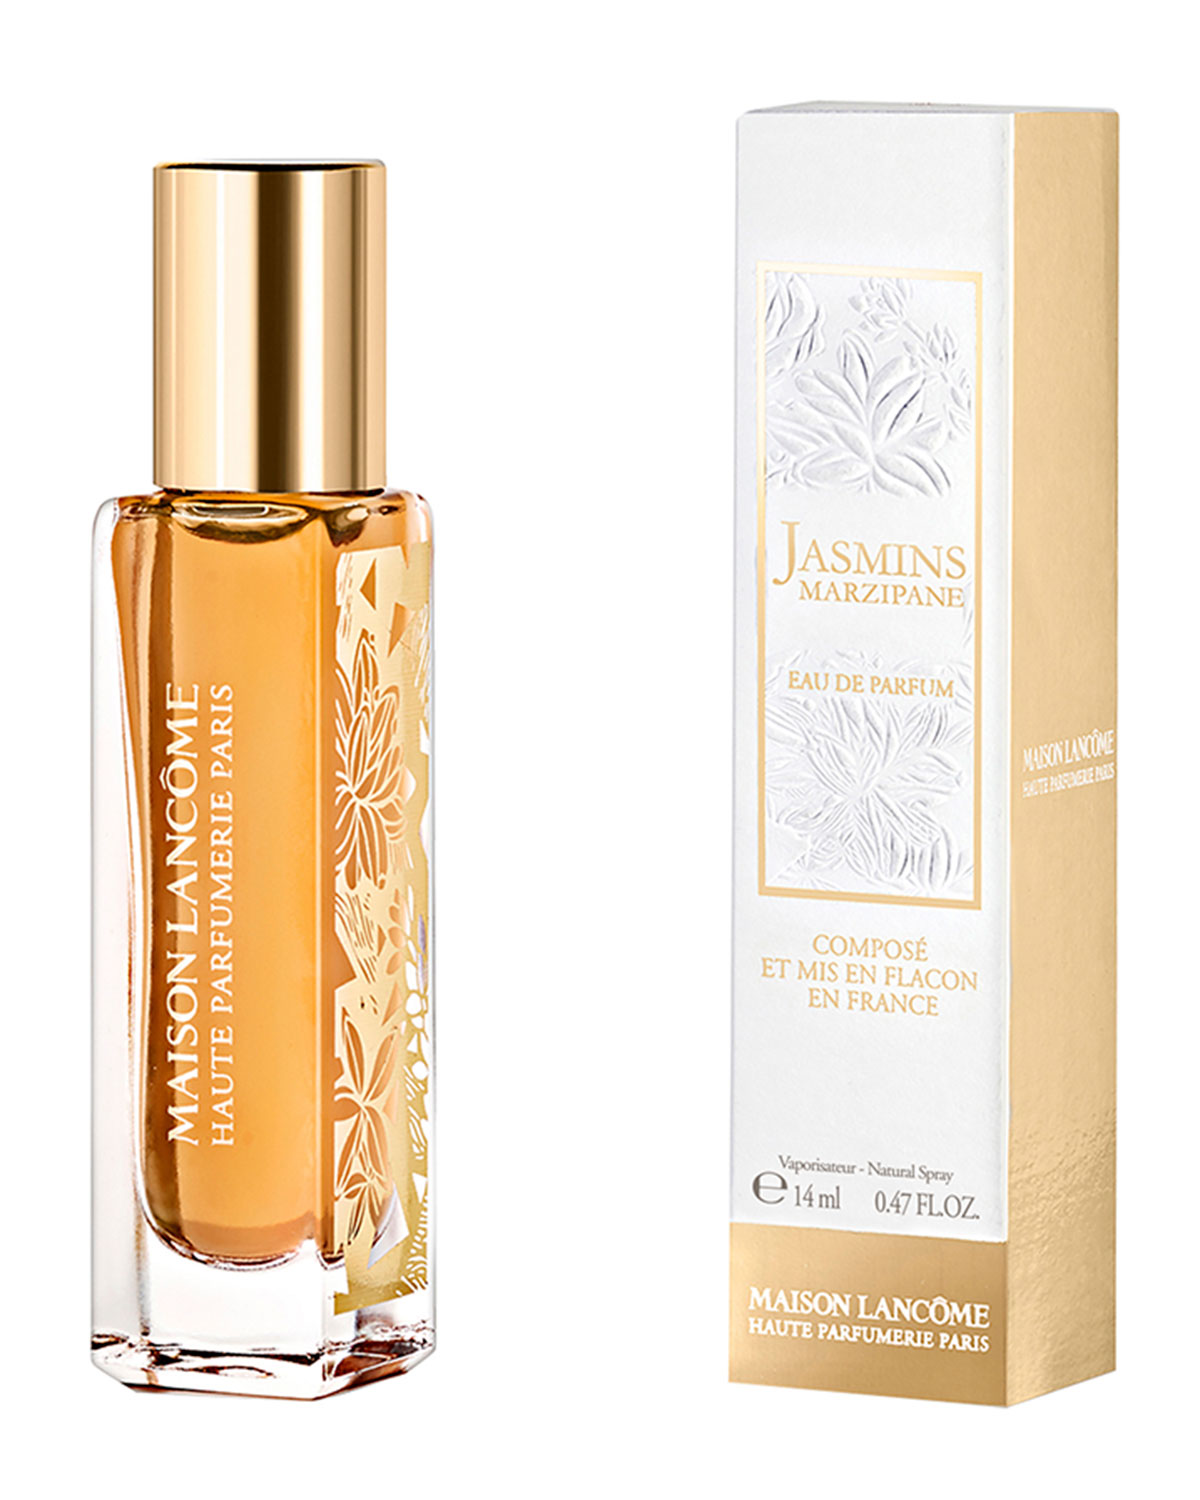 Maison Lancome Jasmins Marzipane Travel Spray Perfume, 0.5 oz. / 15 mL